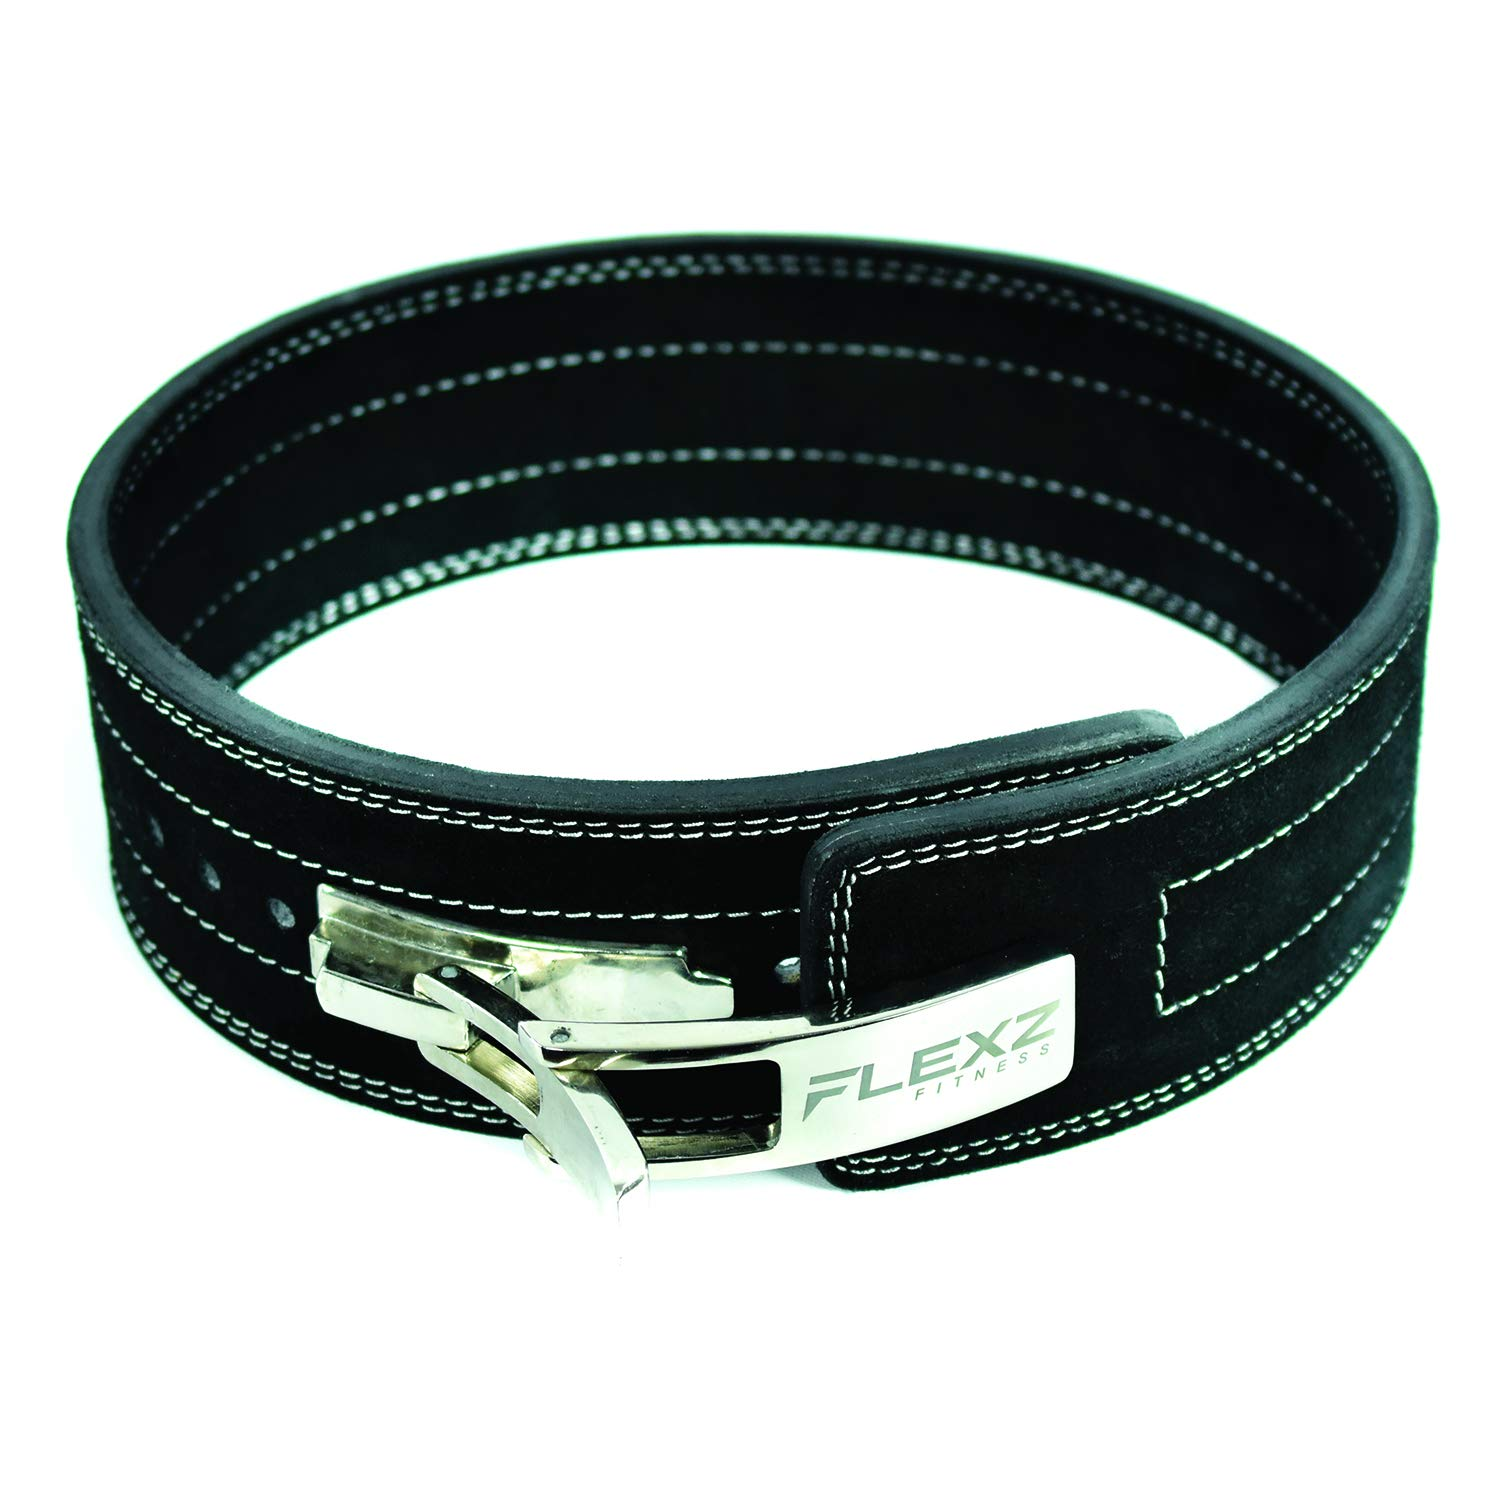 Flexz Fitness Lever Buckle Powerlifting Belt 10mm Weight Lifting Black Medium by Flexz Fitness (Image #1)